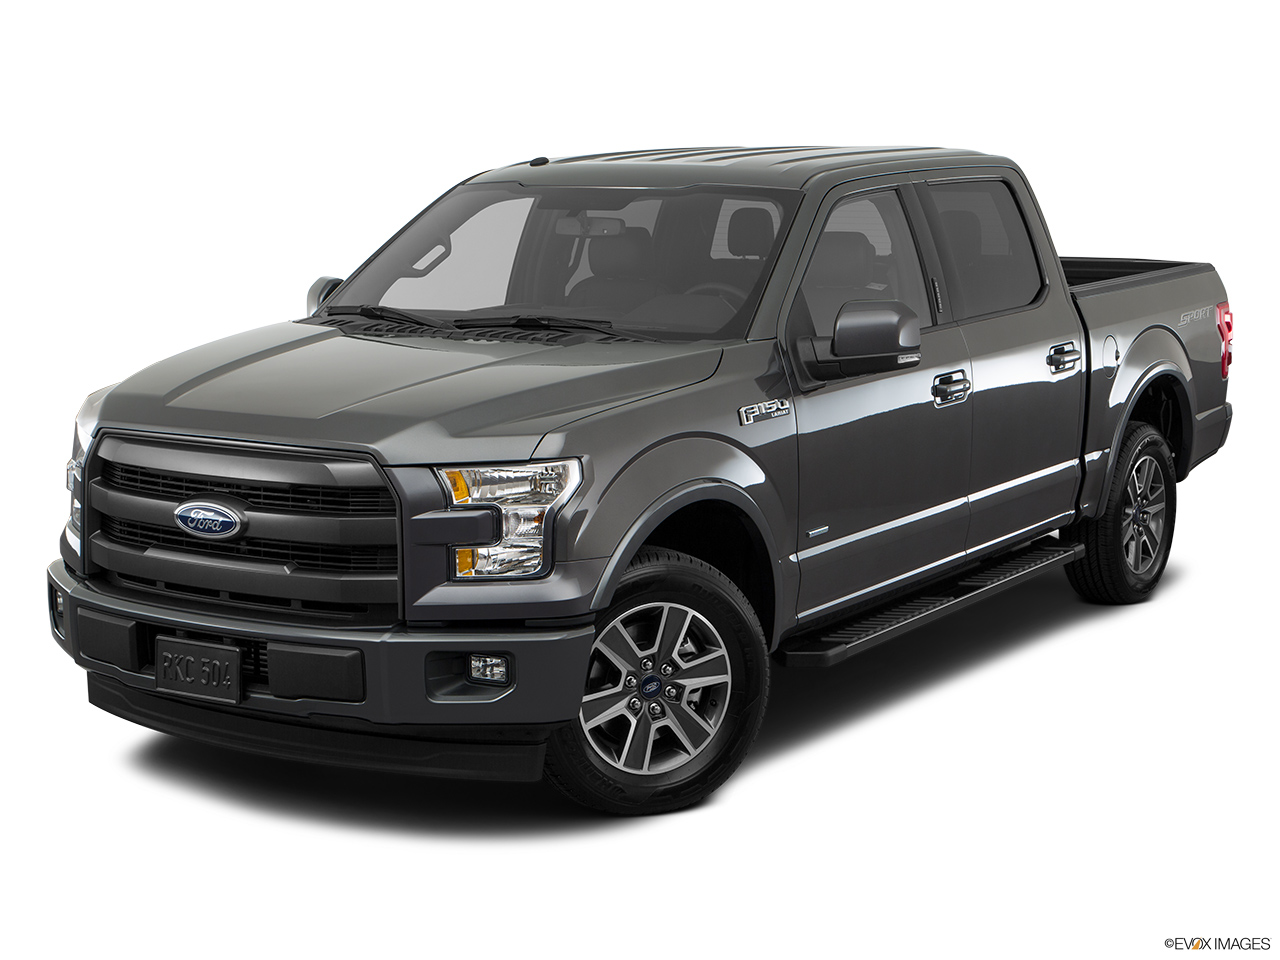 ford f 150 2017 3 5l ecoboost crew cab lariat fx4 luxury sports pack special edition in uae new. Black Bedroom Furniture Sets. Home Design Ideas